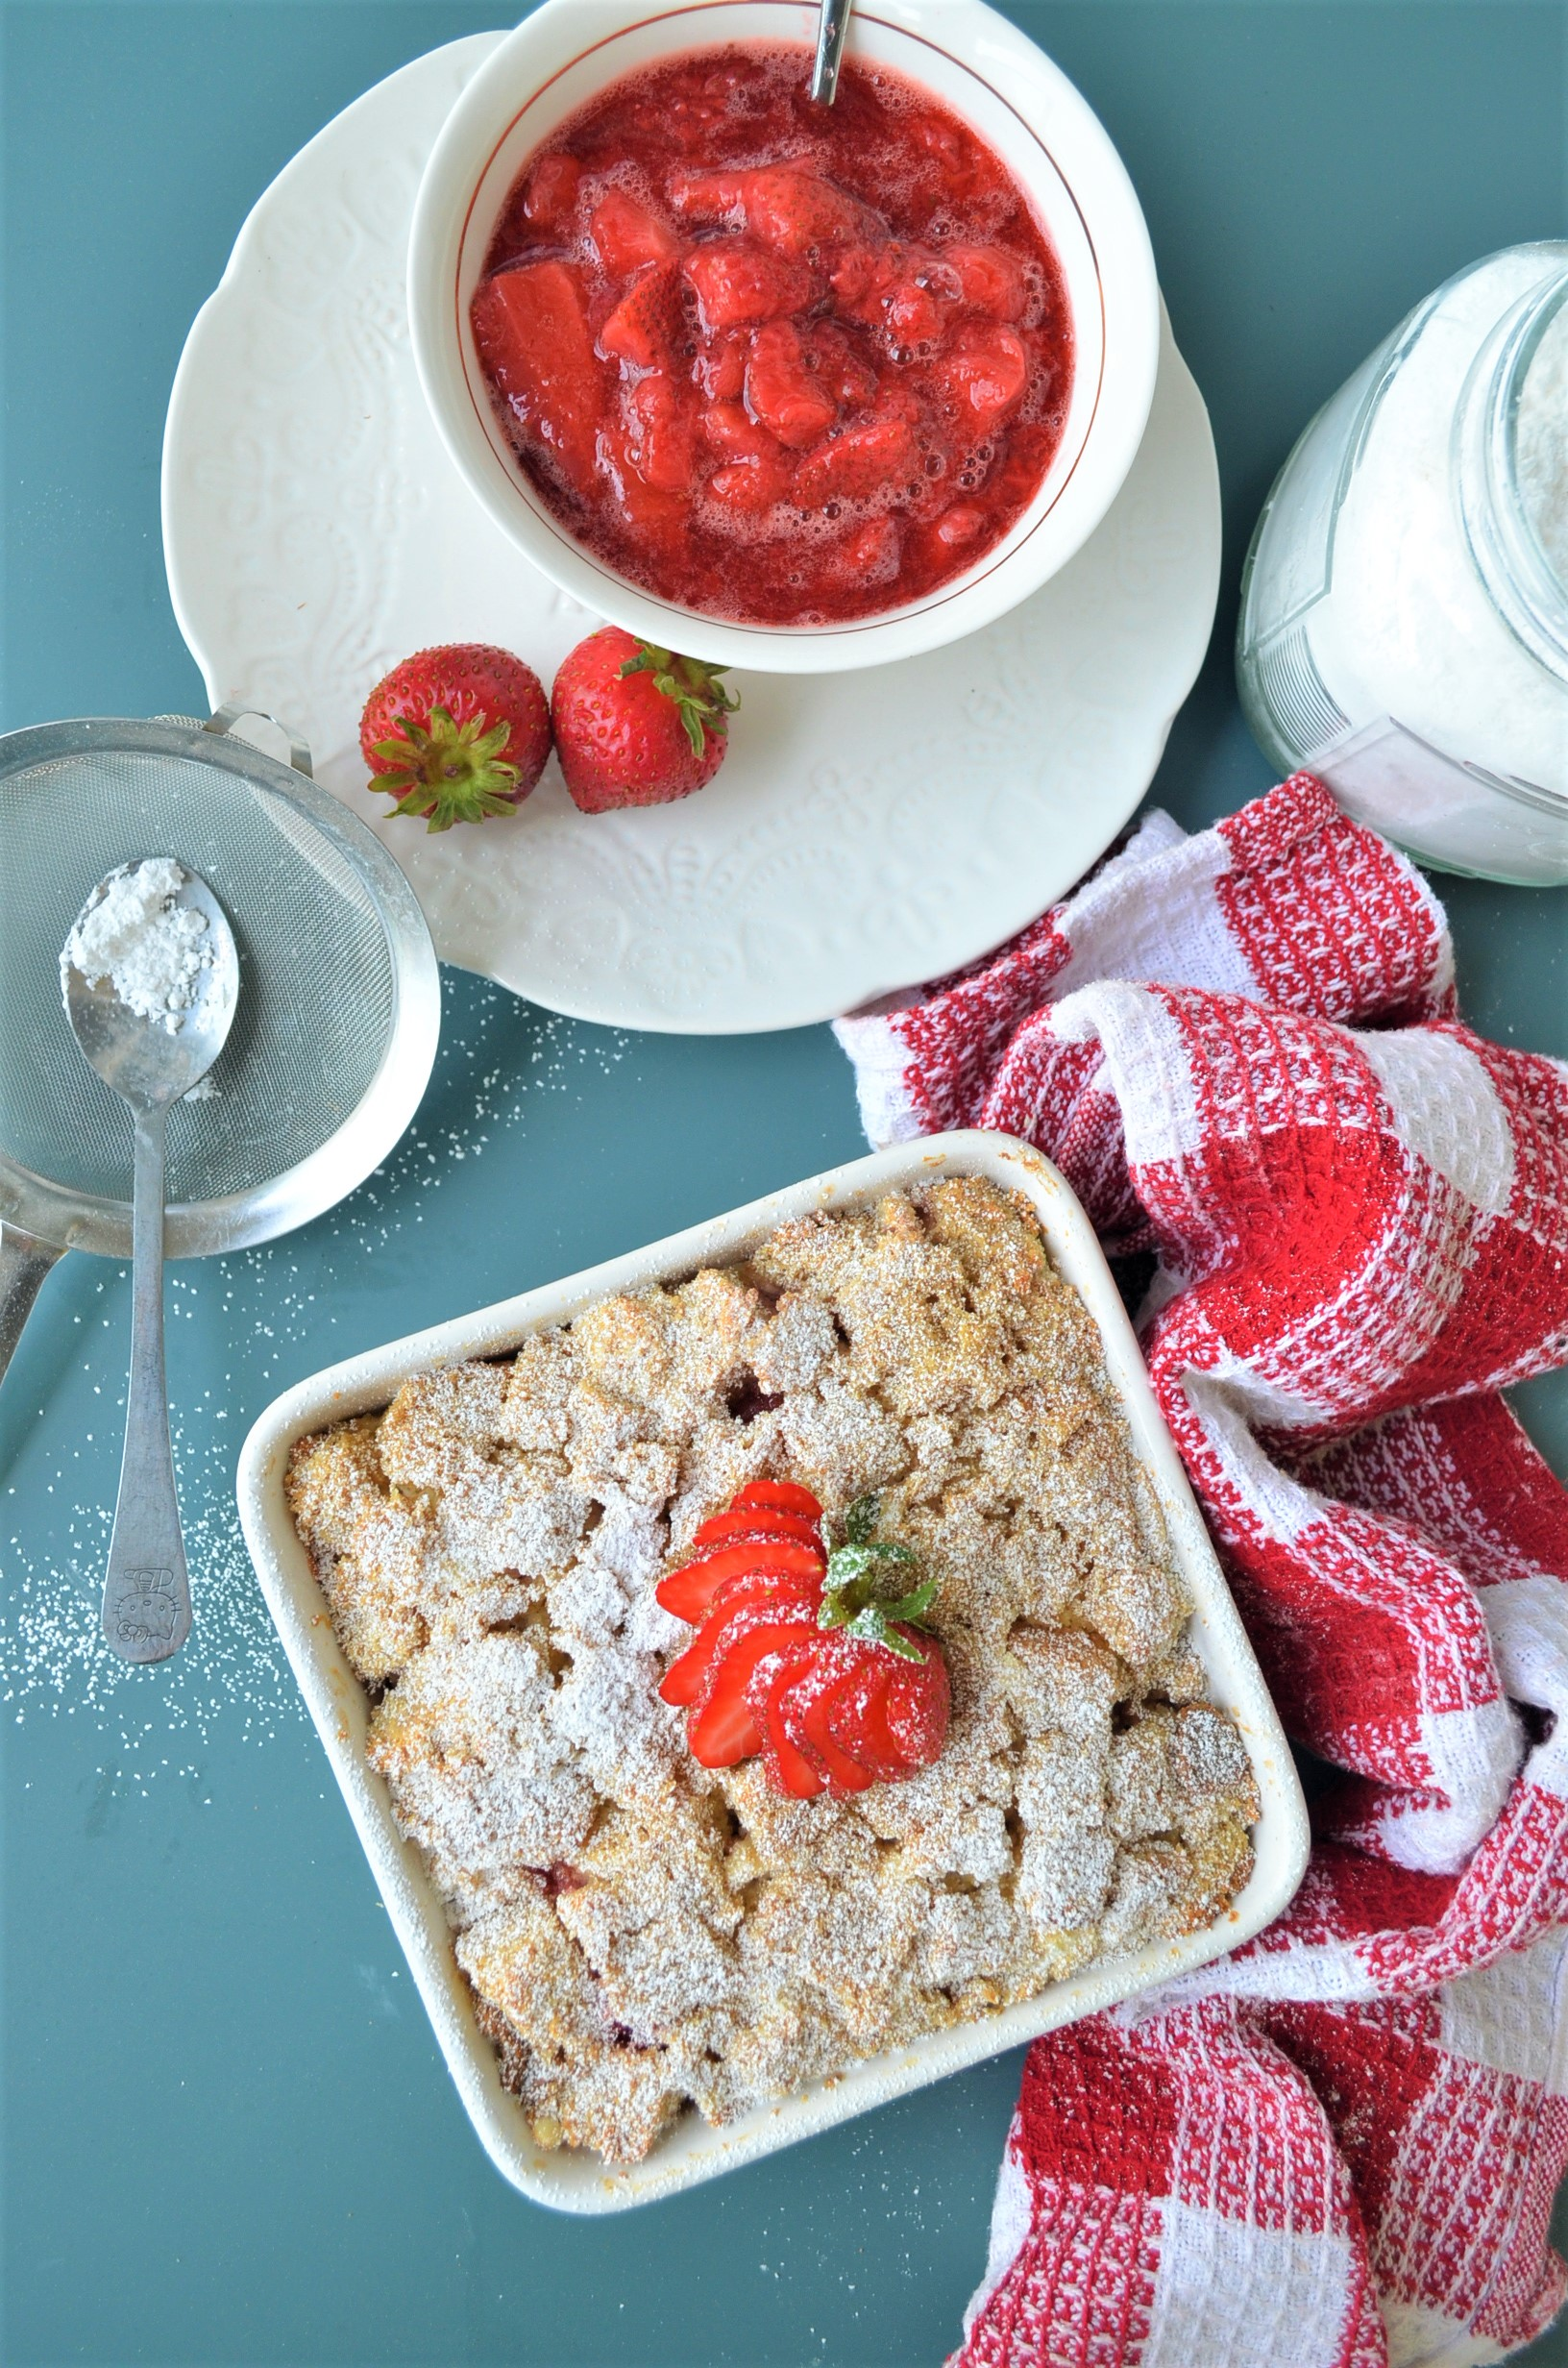 Baked Strawberry and Cream Overnight French Toast